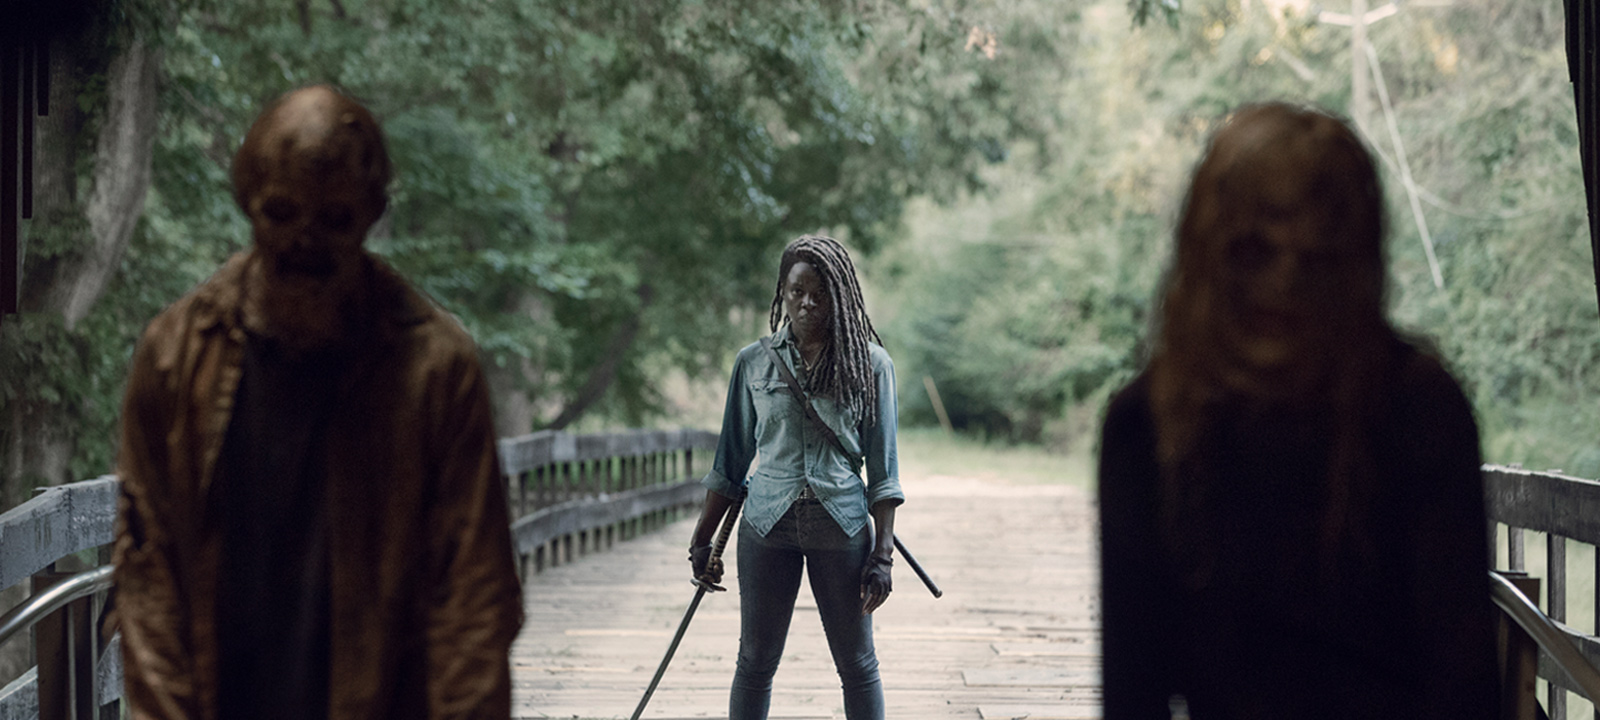 the-walking-dead-episode-909-extended-michonne-gurira-800×600